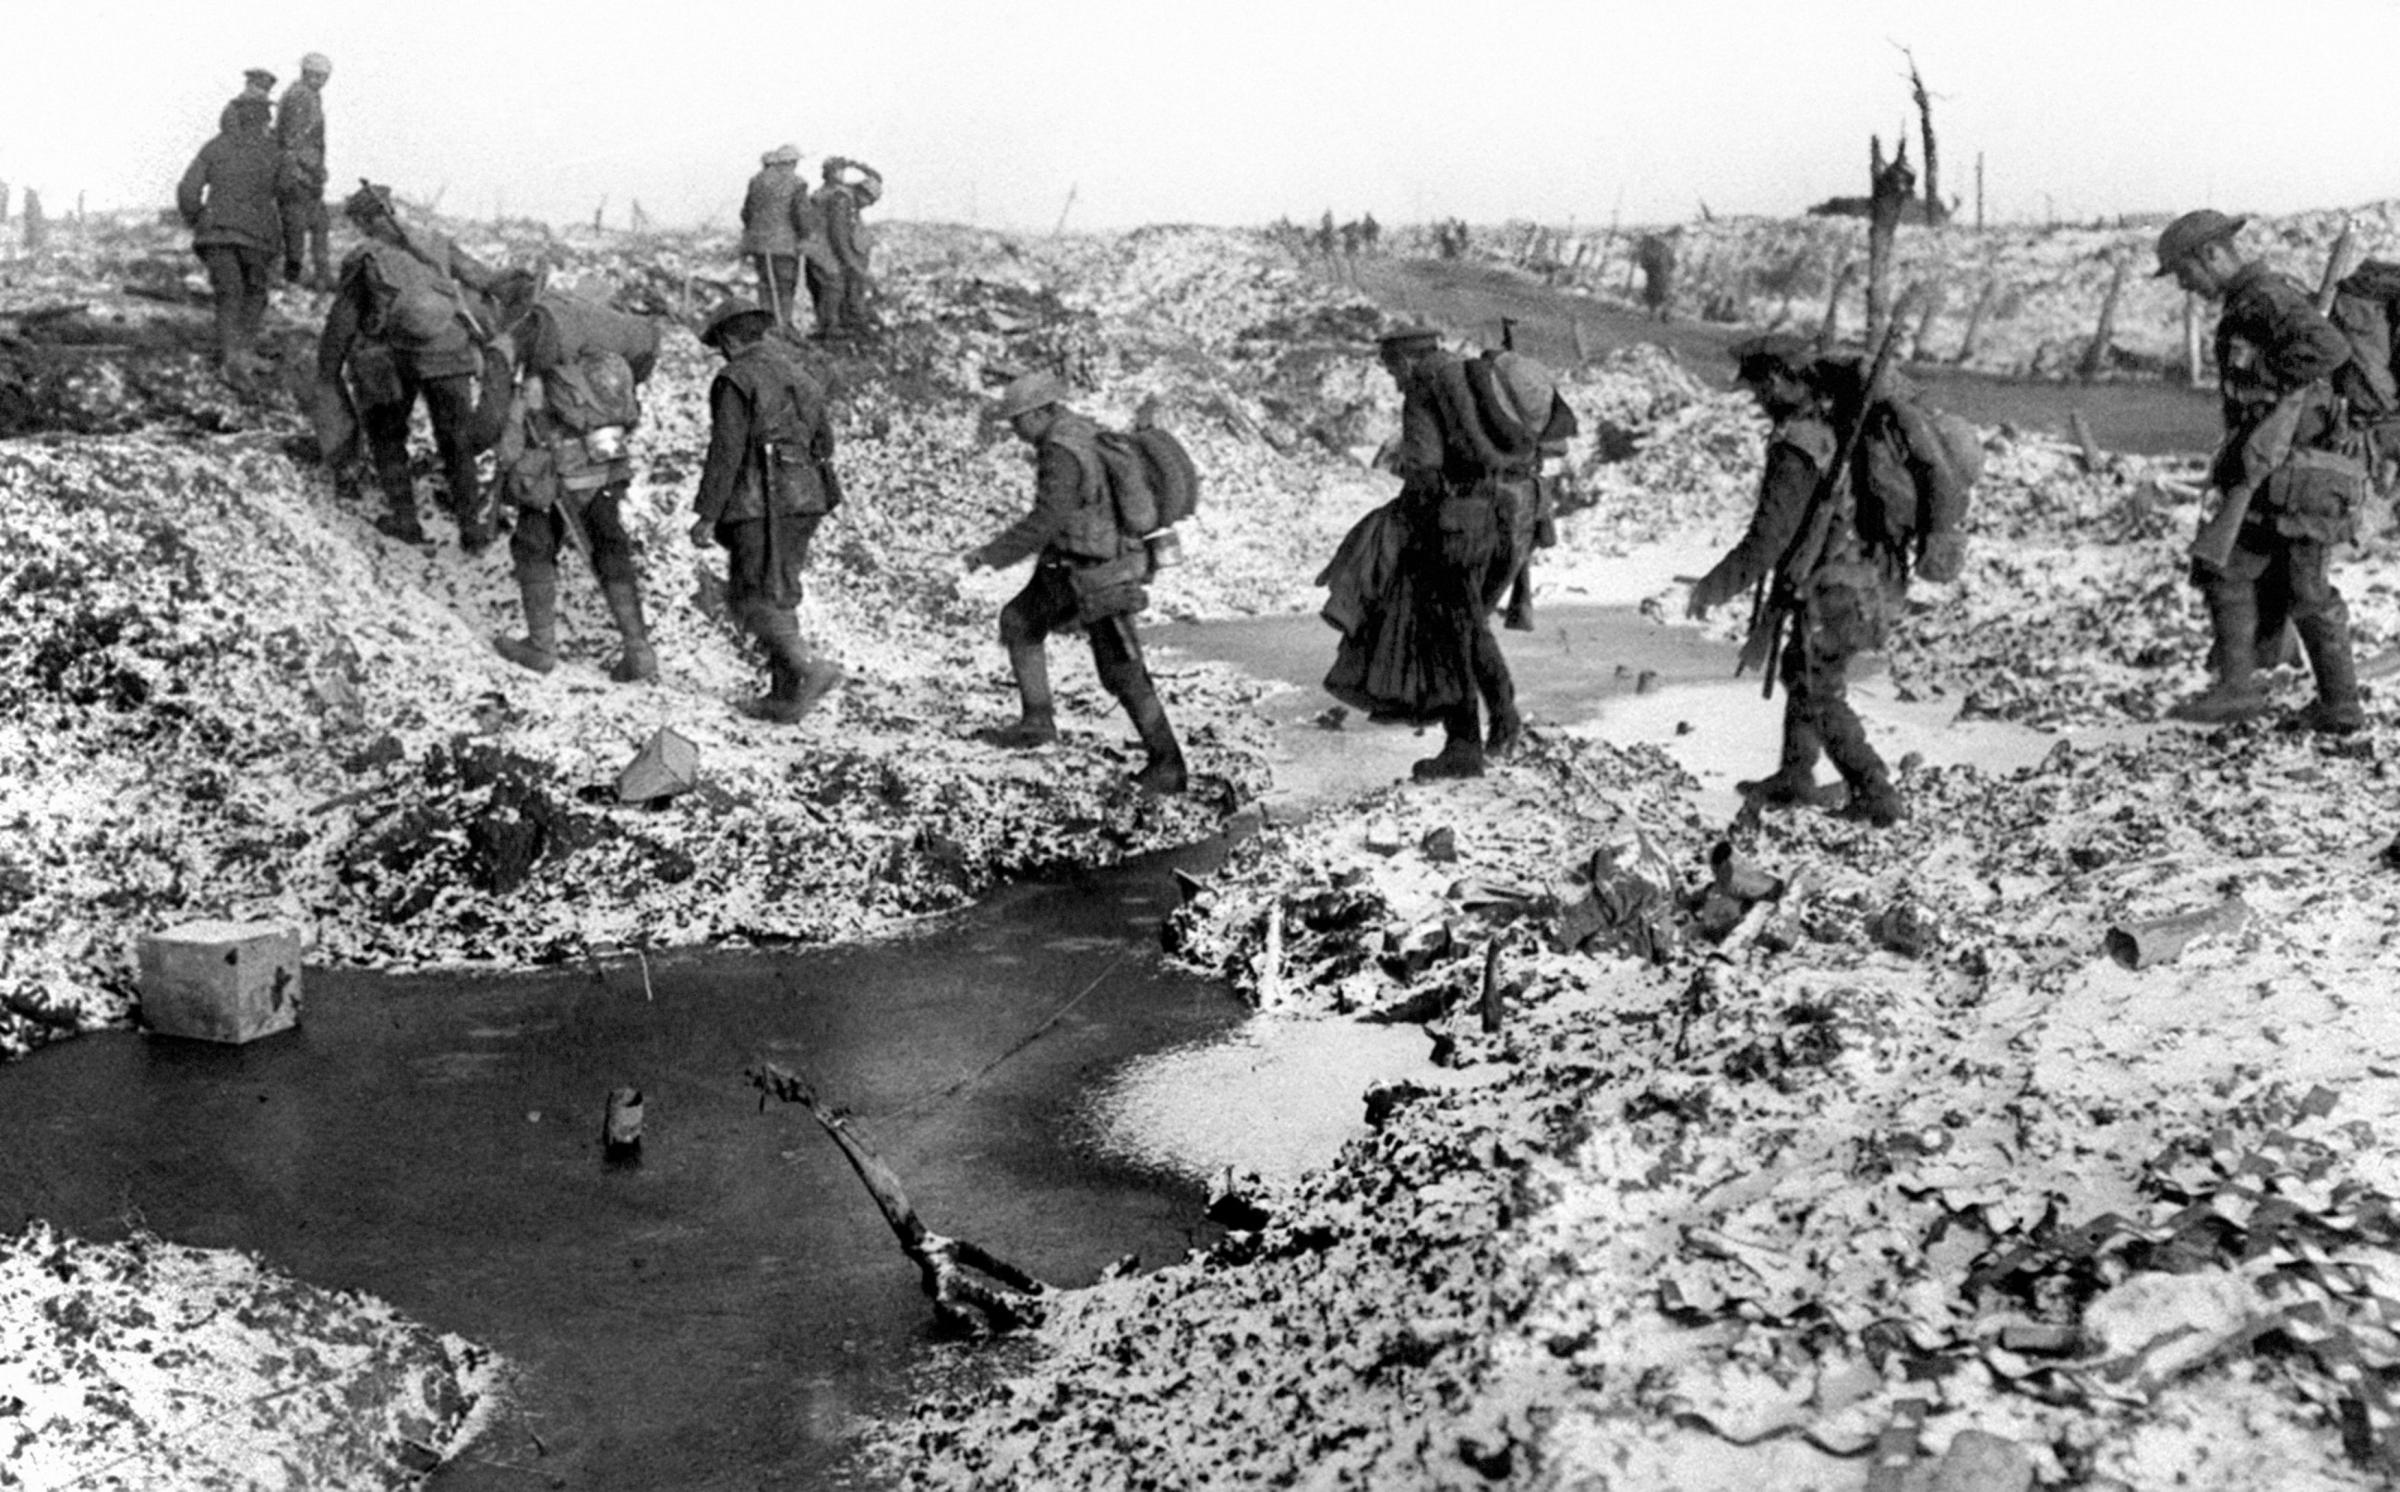 File photo of British soldiers negotiating a shell-cratered, winter landscape along the River Somme in late 1916 after the close of the Allied offensive.